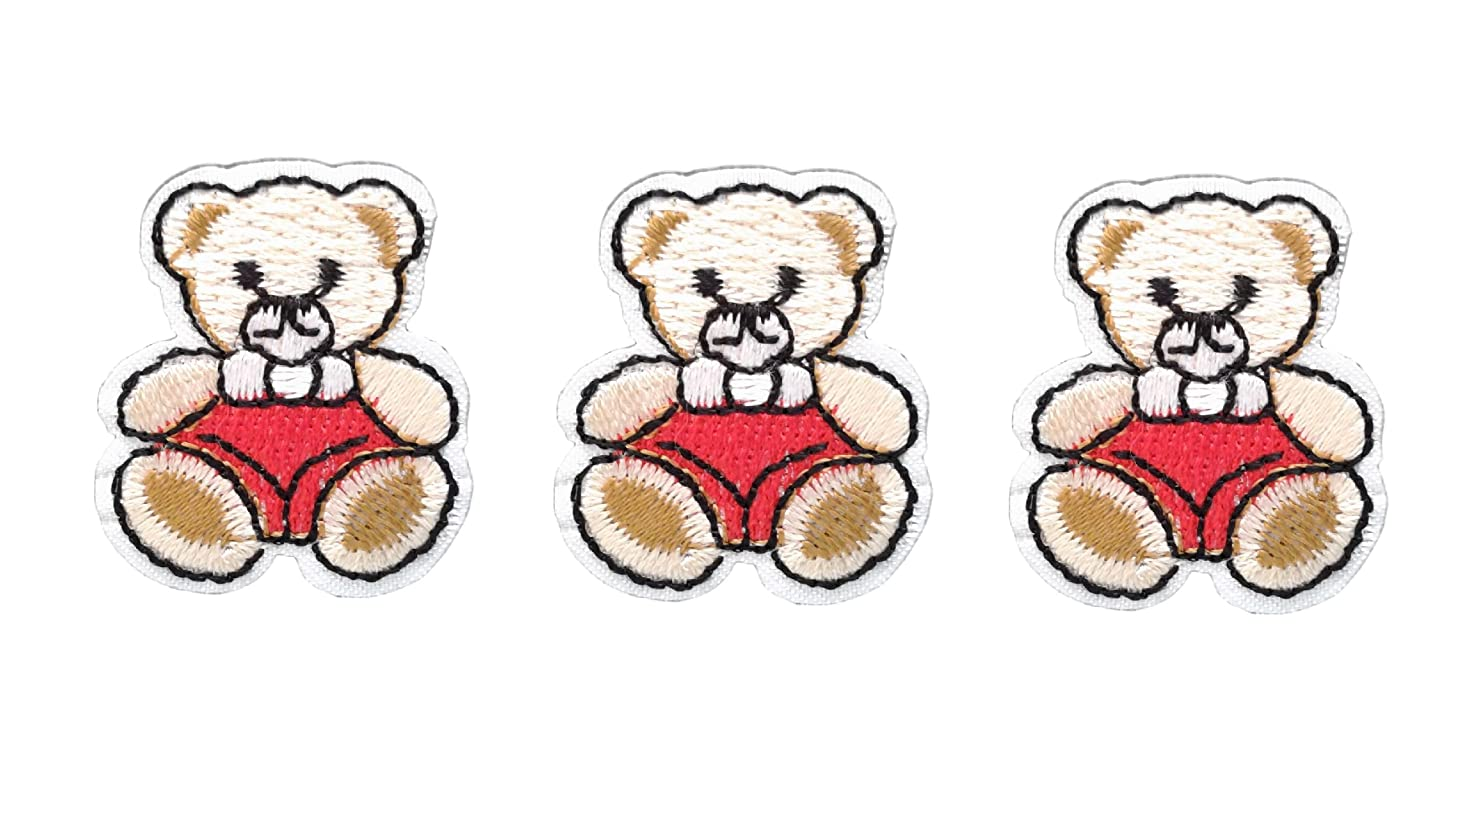 3 small pieces Red TEDDY BEAR Iron On Patch Fabric Applique Motif Children Scrapbooking Decal 1.3 x 1.1 inches (3.3 x 2.8 cm)